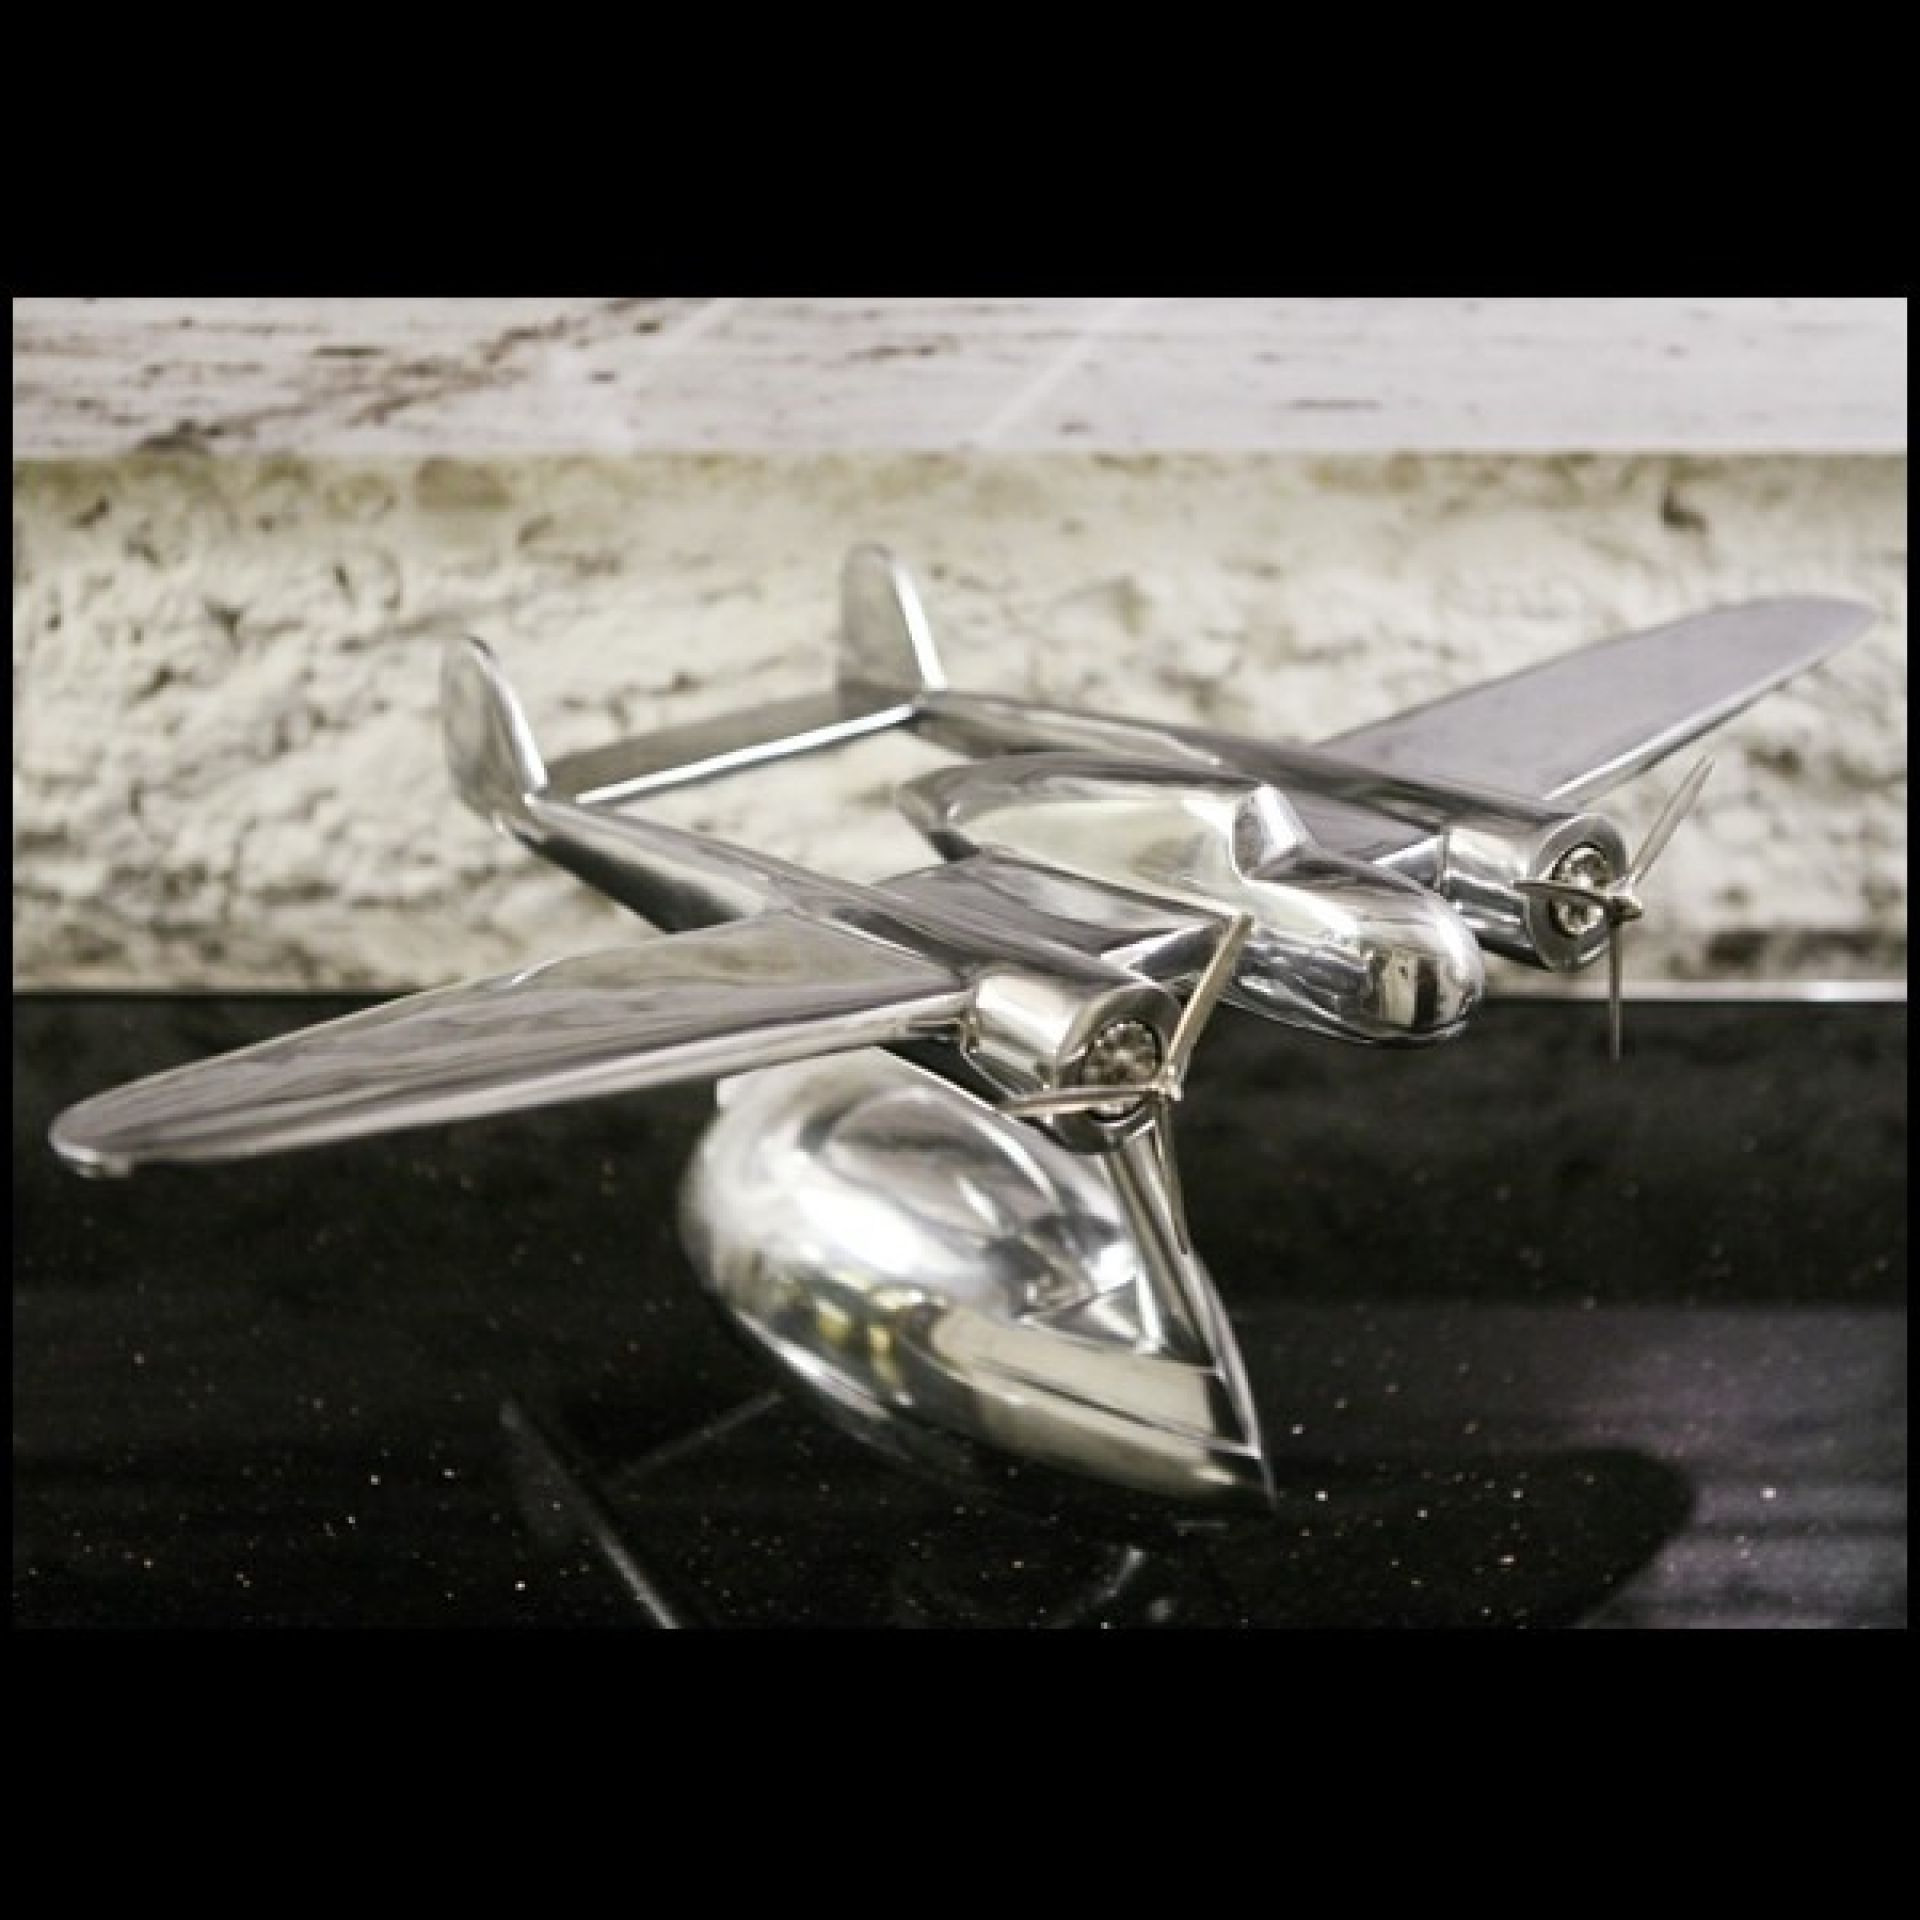 AIRCRAFT MODEL WITH POLISHED ALUMINUM STRUCTURE 24-DIXIE AIRCRAFT